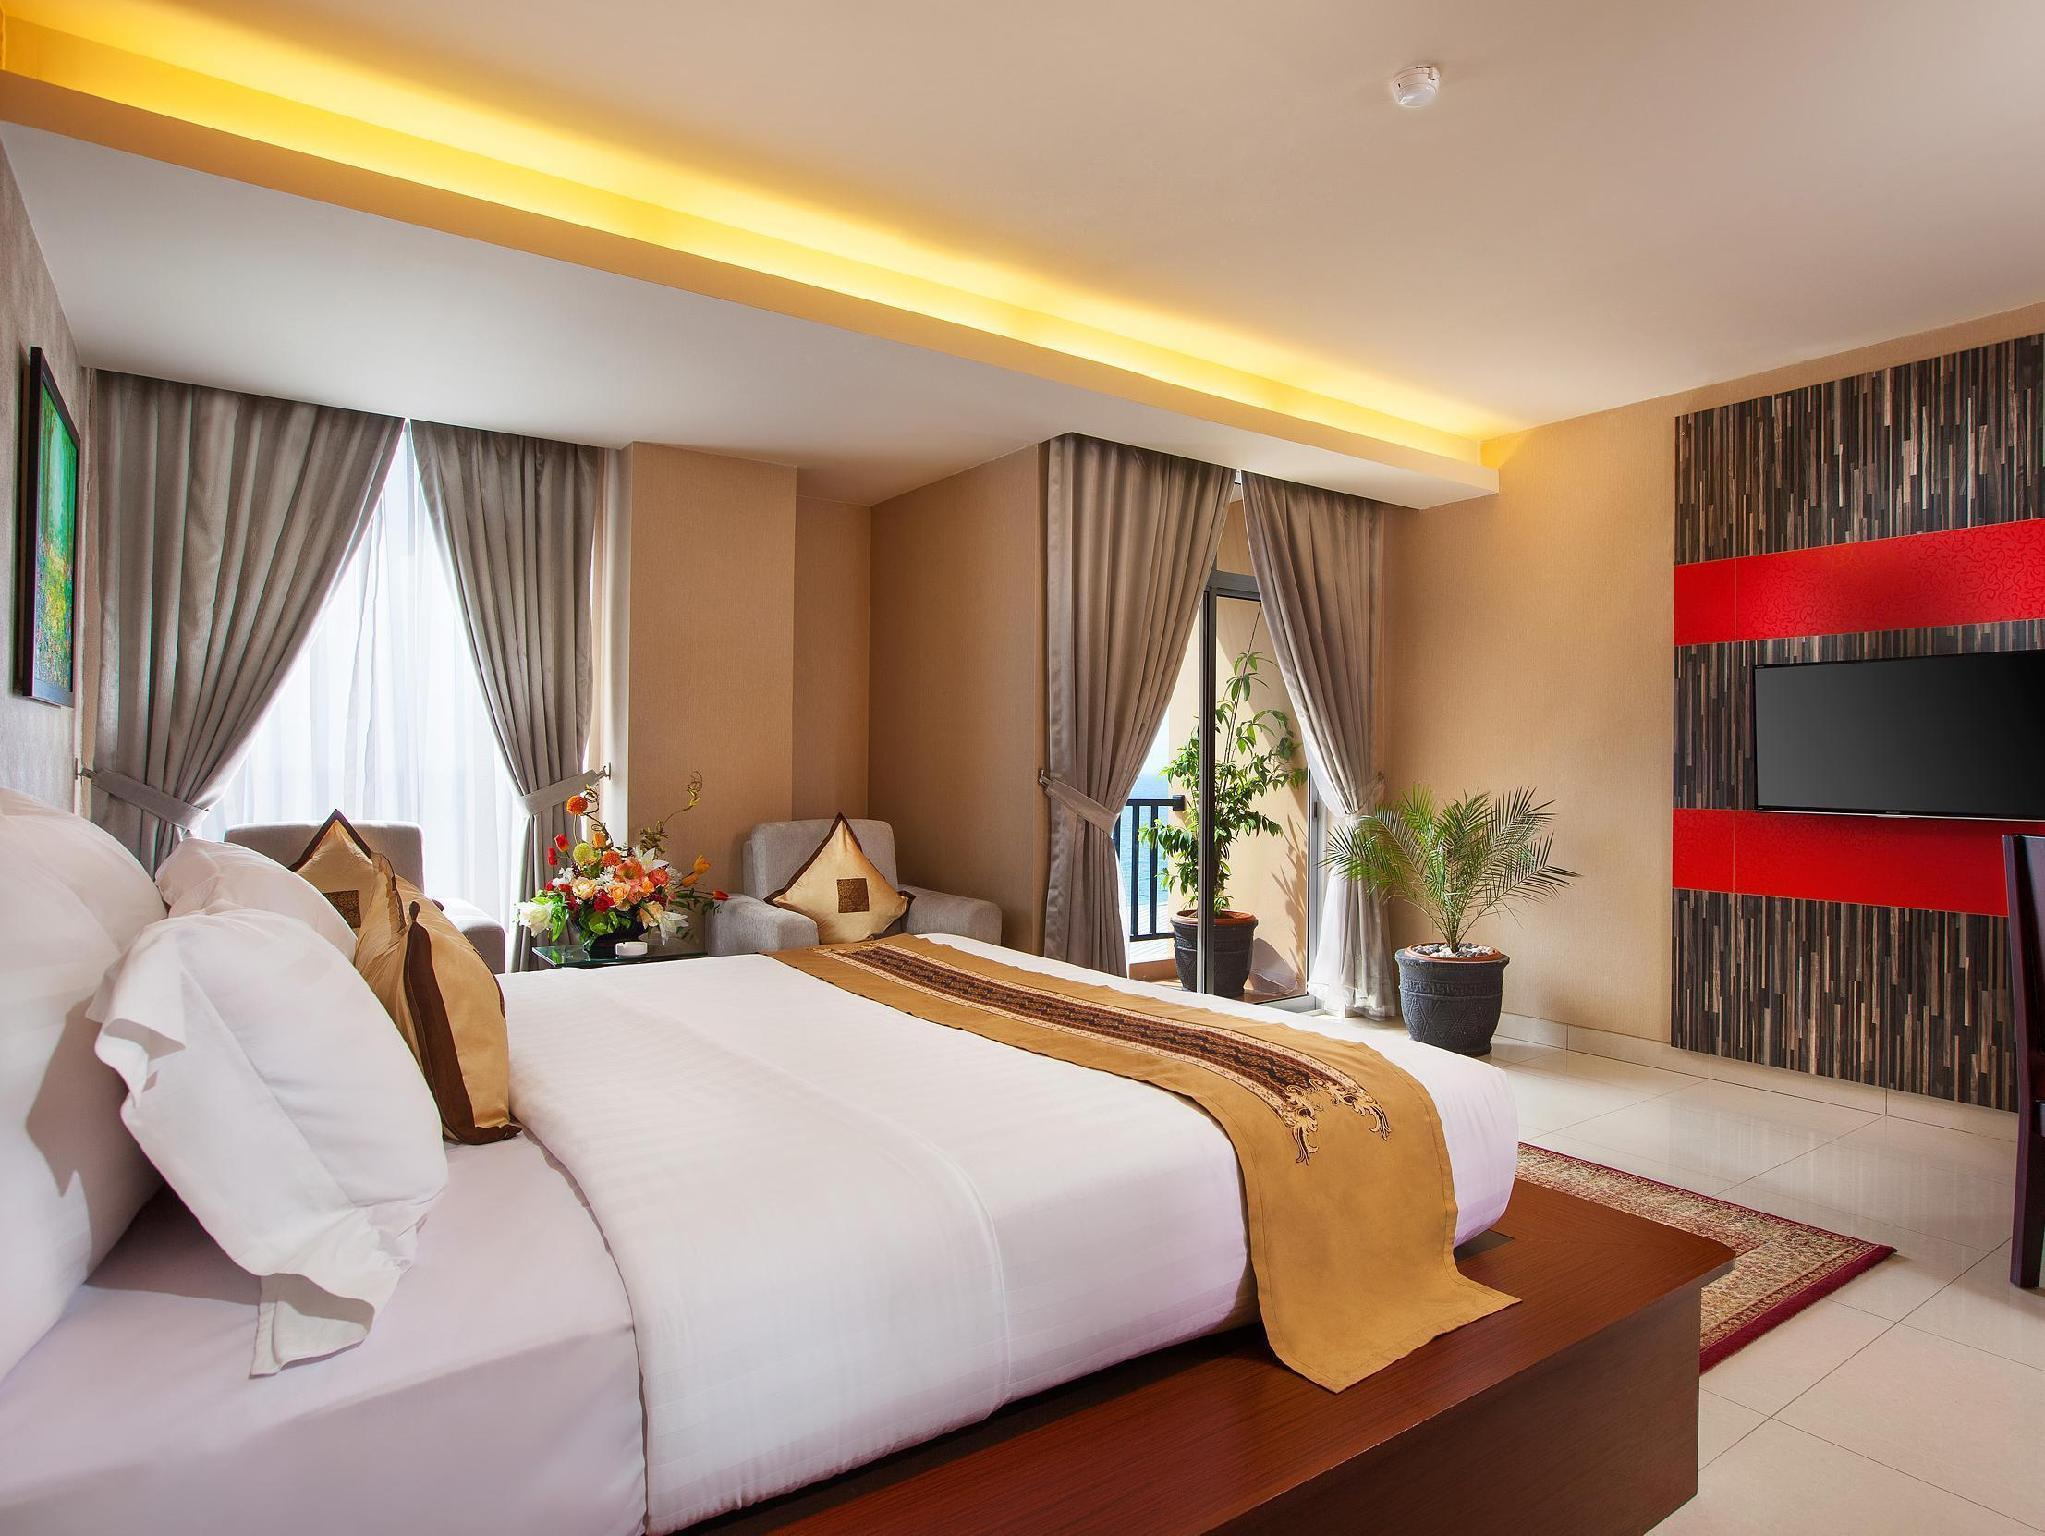 Deluxe Pemandangan Bandar Double (Deluxe City View Double)